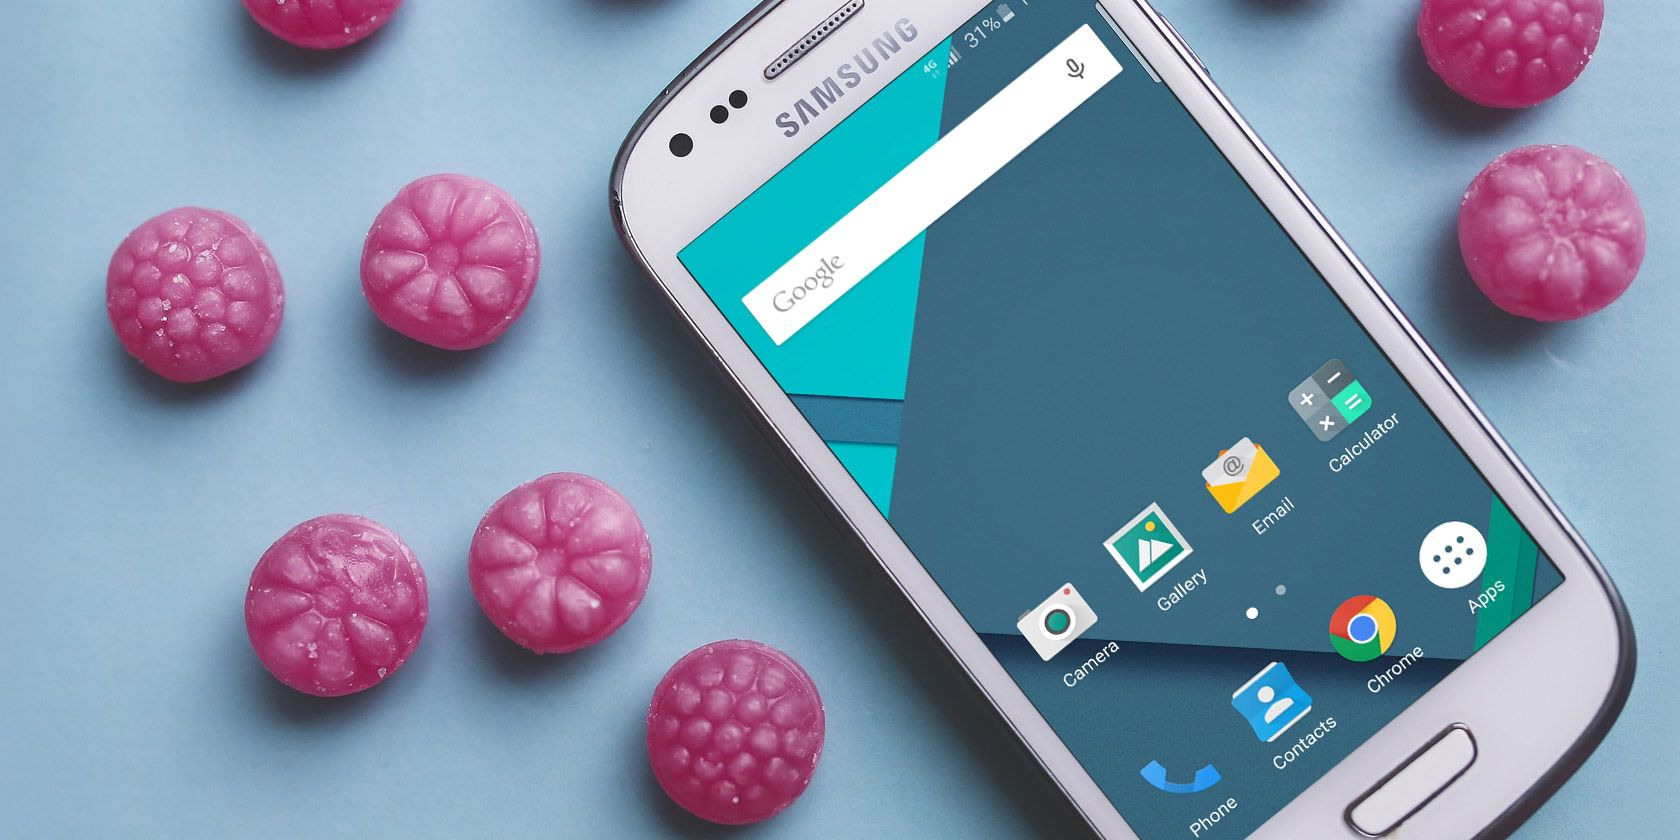 How to Make Android Faster: What Works and What Doesn't